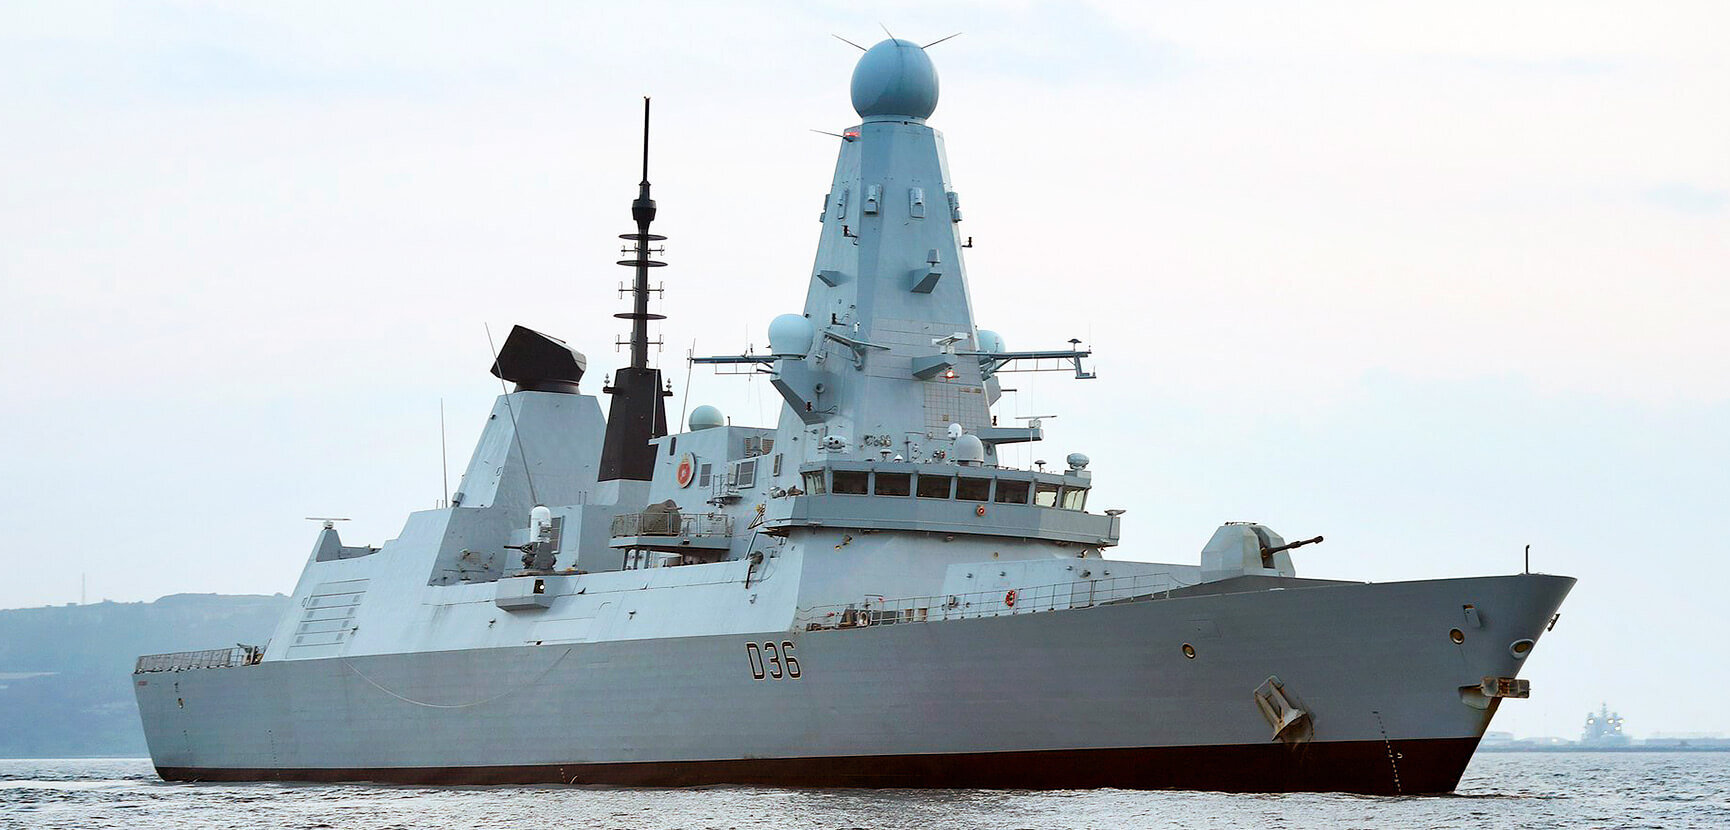 HMS Defender returns to the fleet fitted for intelligence gathering